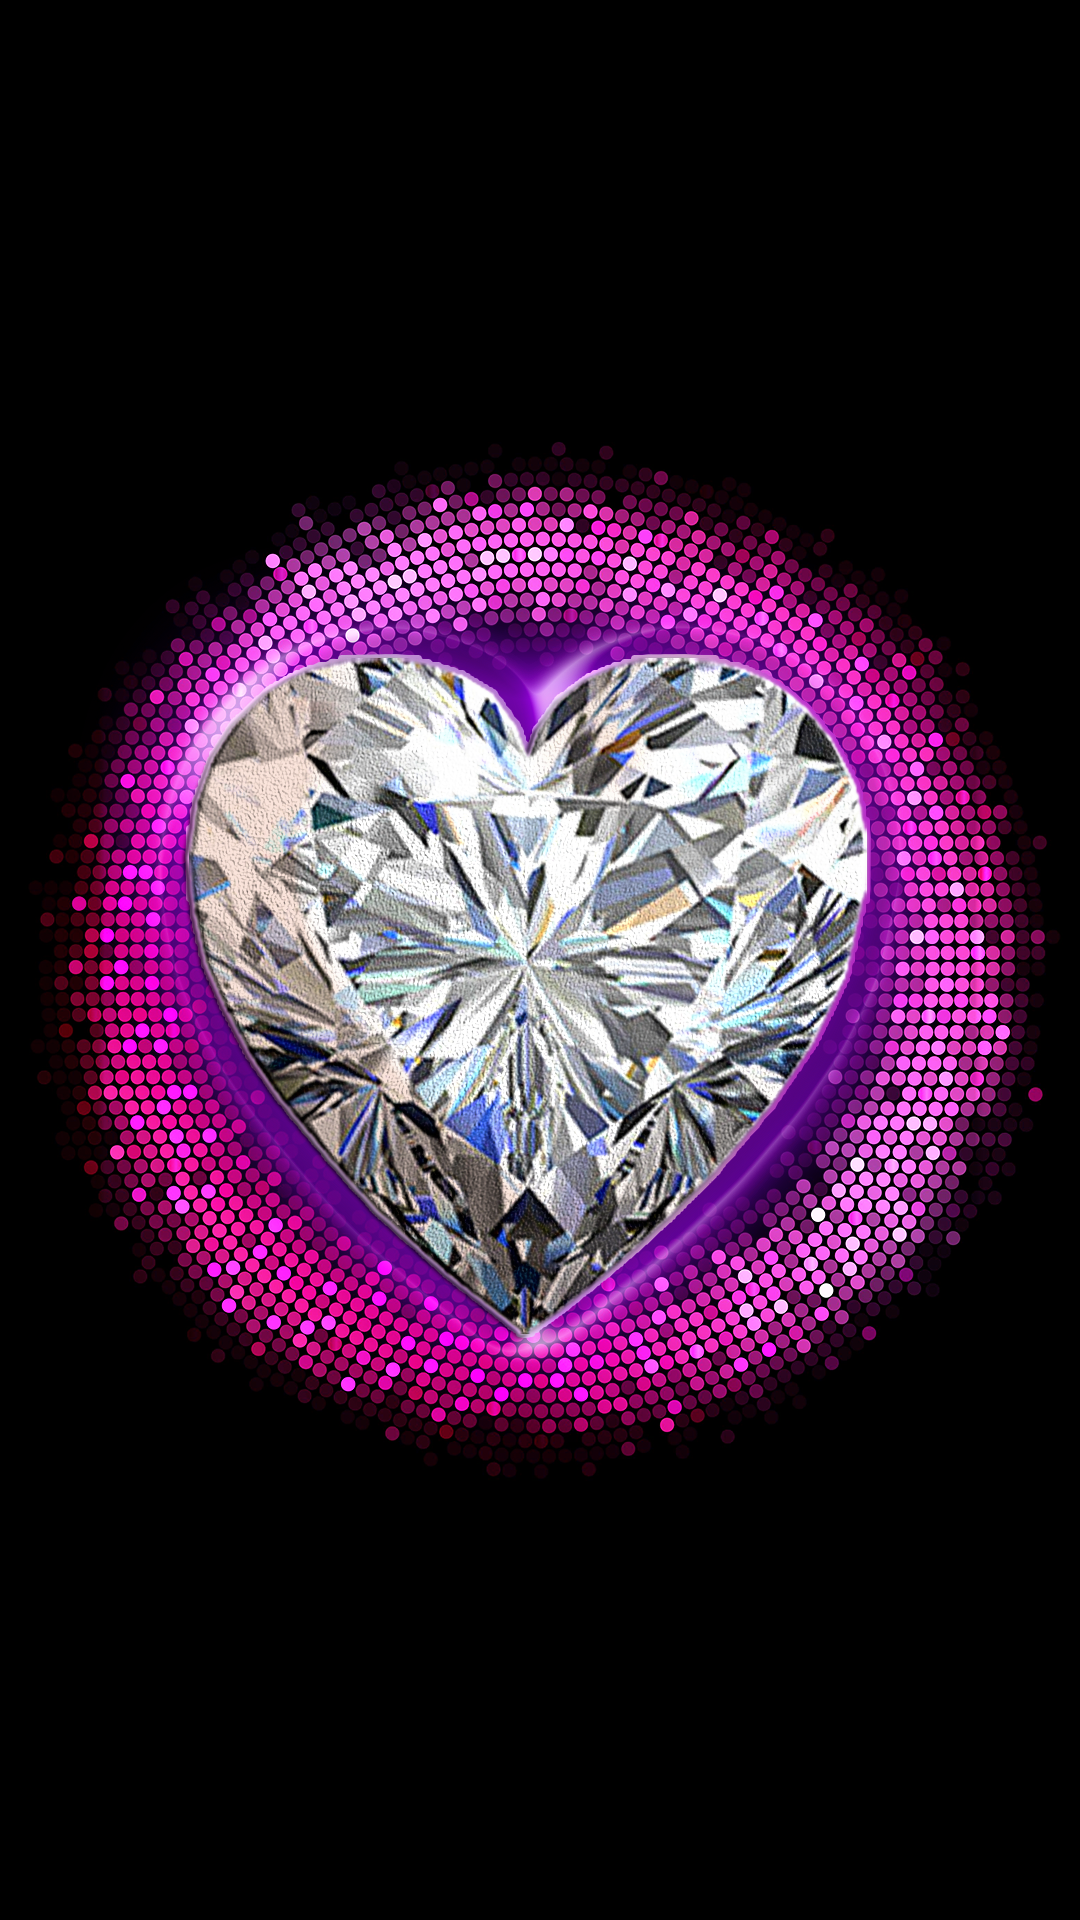 Download Our HD Diamond Bling Wallpaper For Android Phones ...